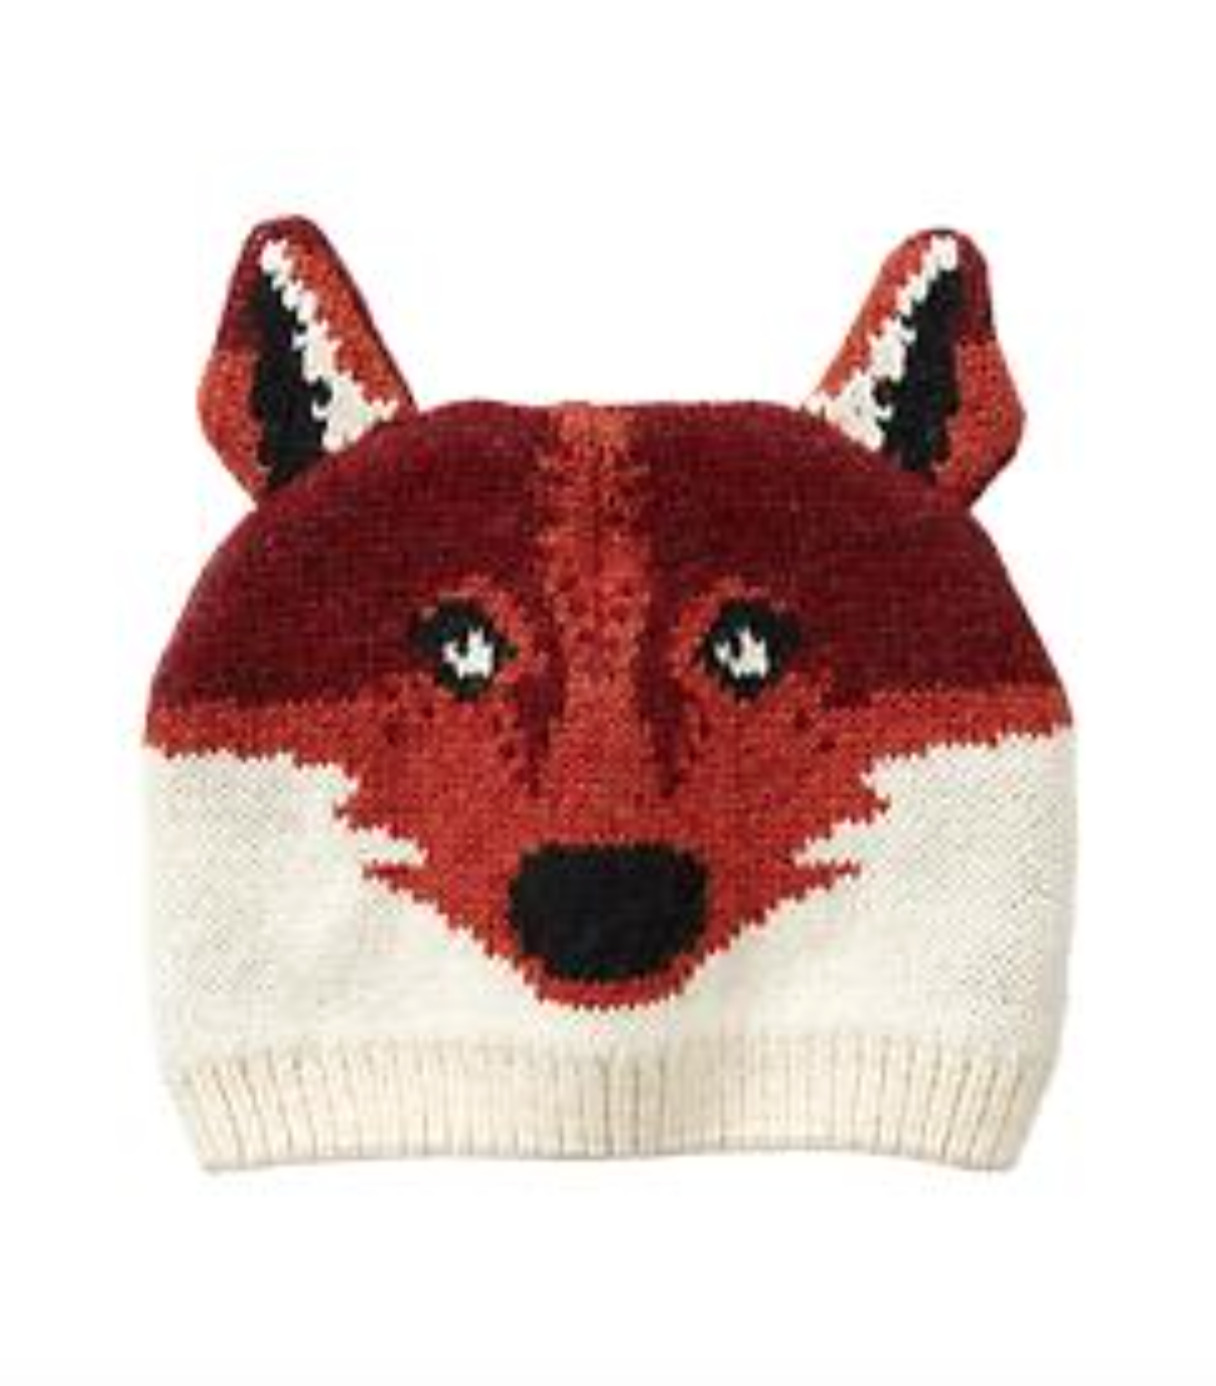 b623438d343 GAP Baby Boys Size 0-6 Months Red   Orange Fox   Animal Sweater Hat 1 of  1Only 1 available ...